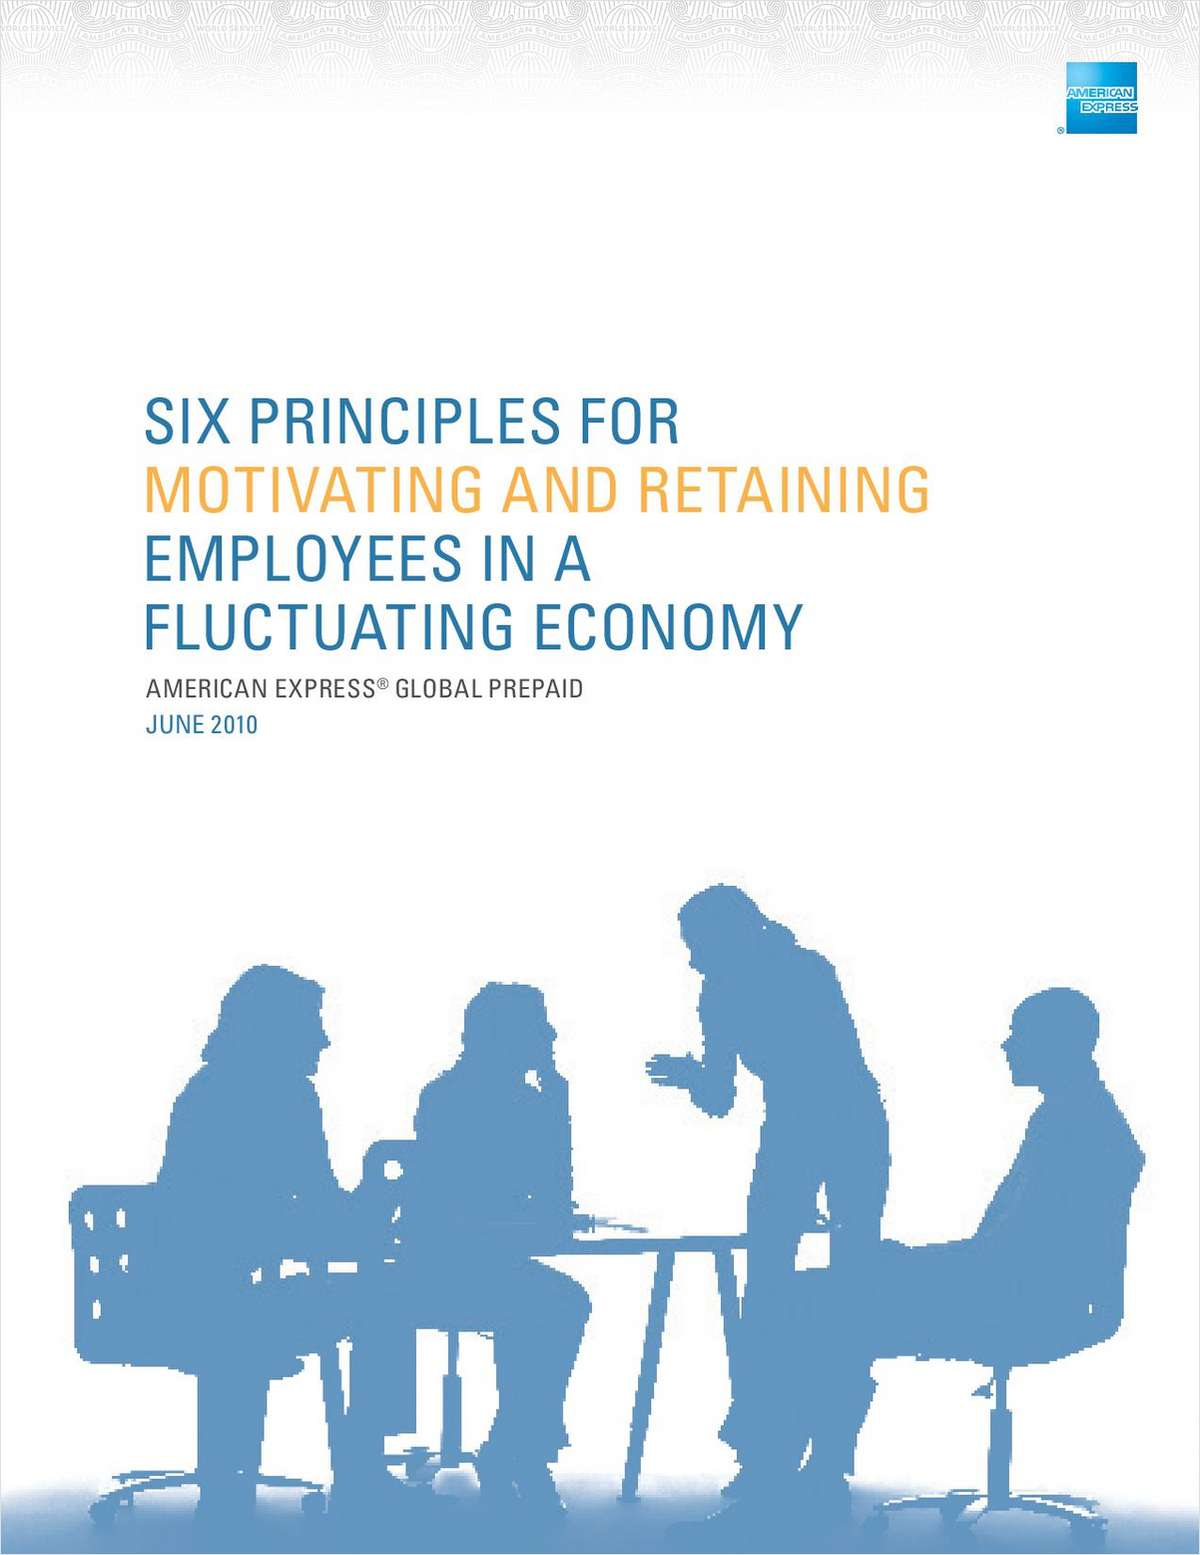 Six Principles for Motivating and Retaining Employees